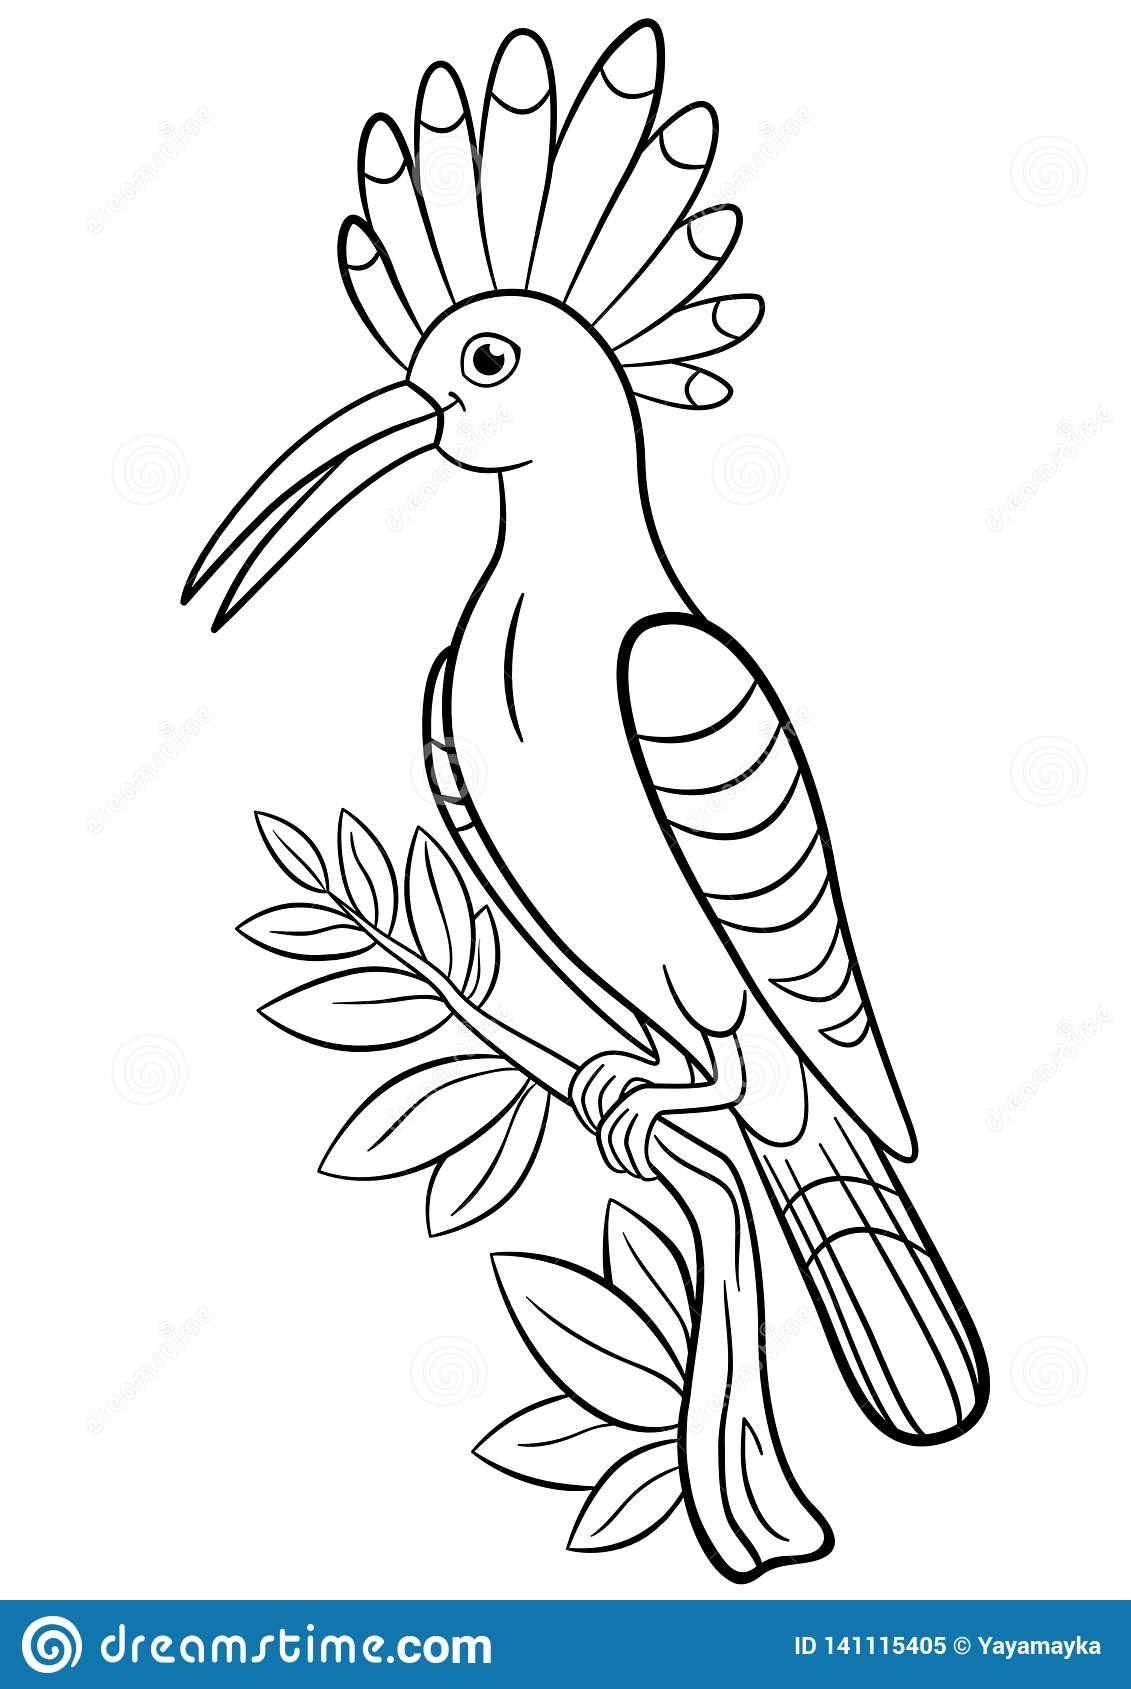 Coloring pages. Cute beautiful hoopoe sits on the tree branch